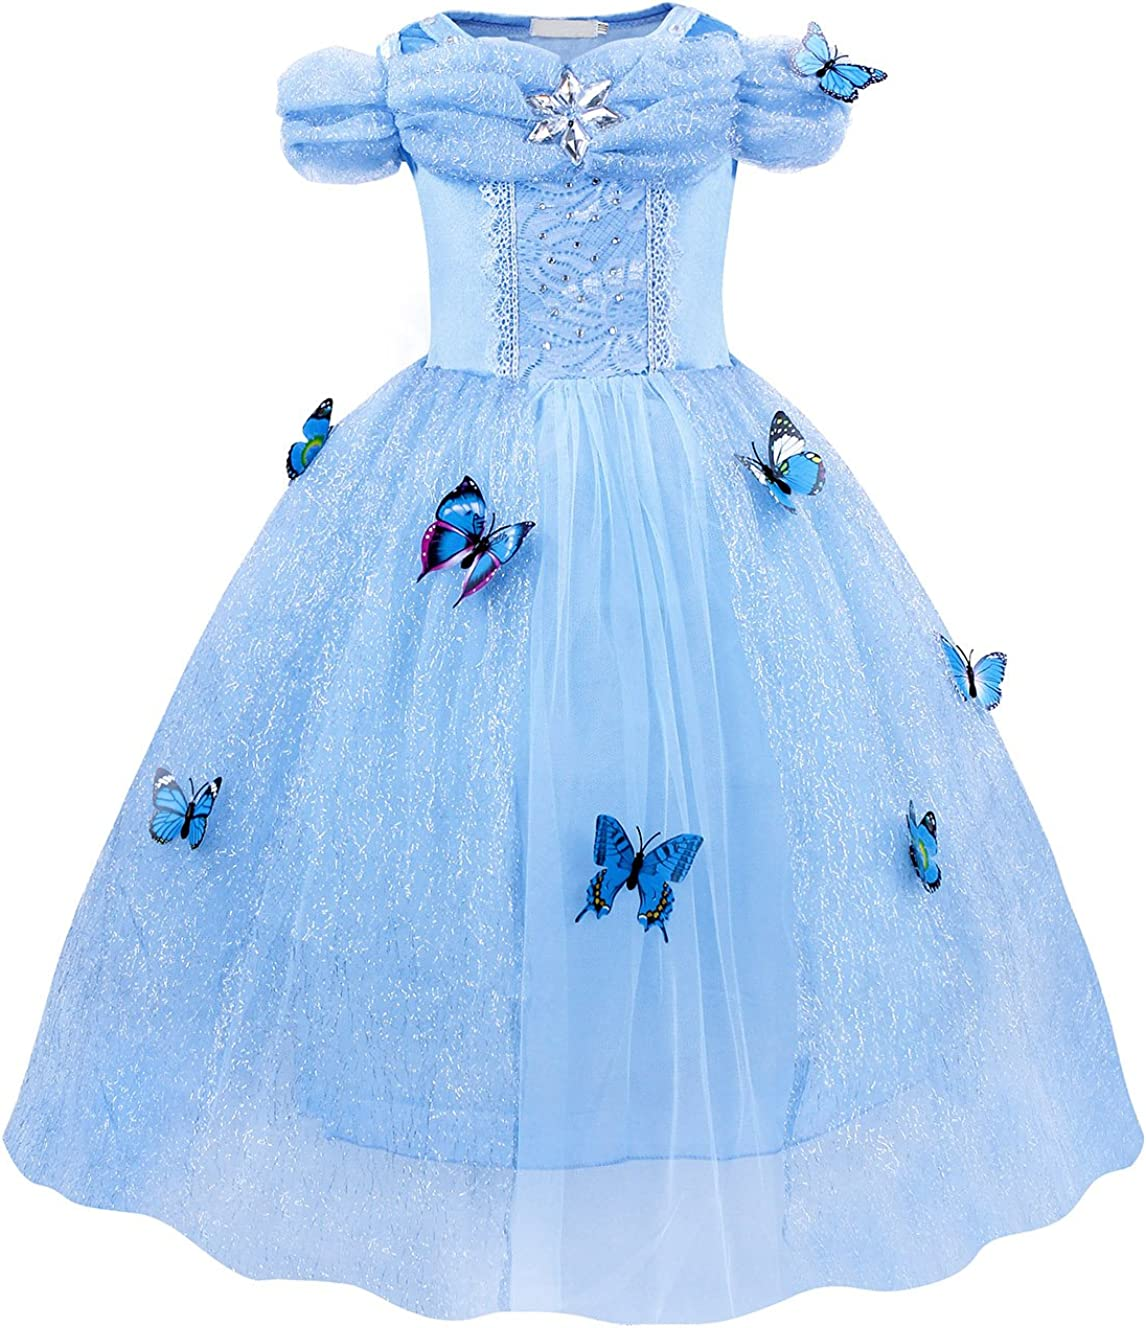 HenzWorld Cinderella Costume Dress Princess Girls Birthday Party Cosplay Outfit